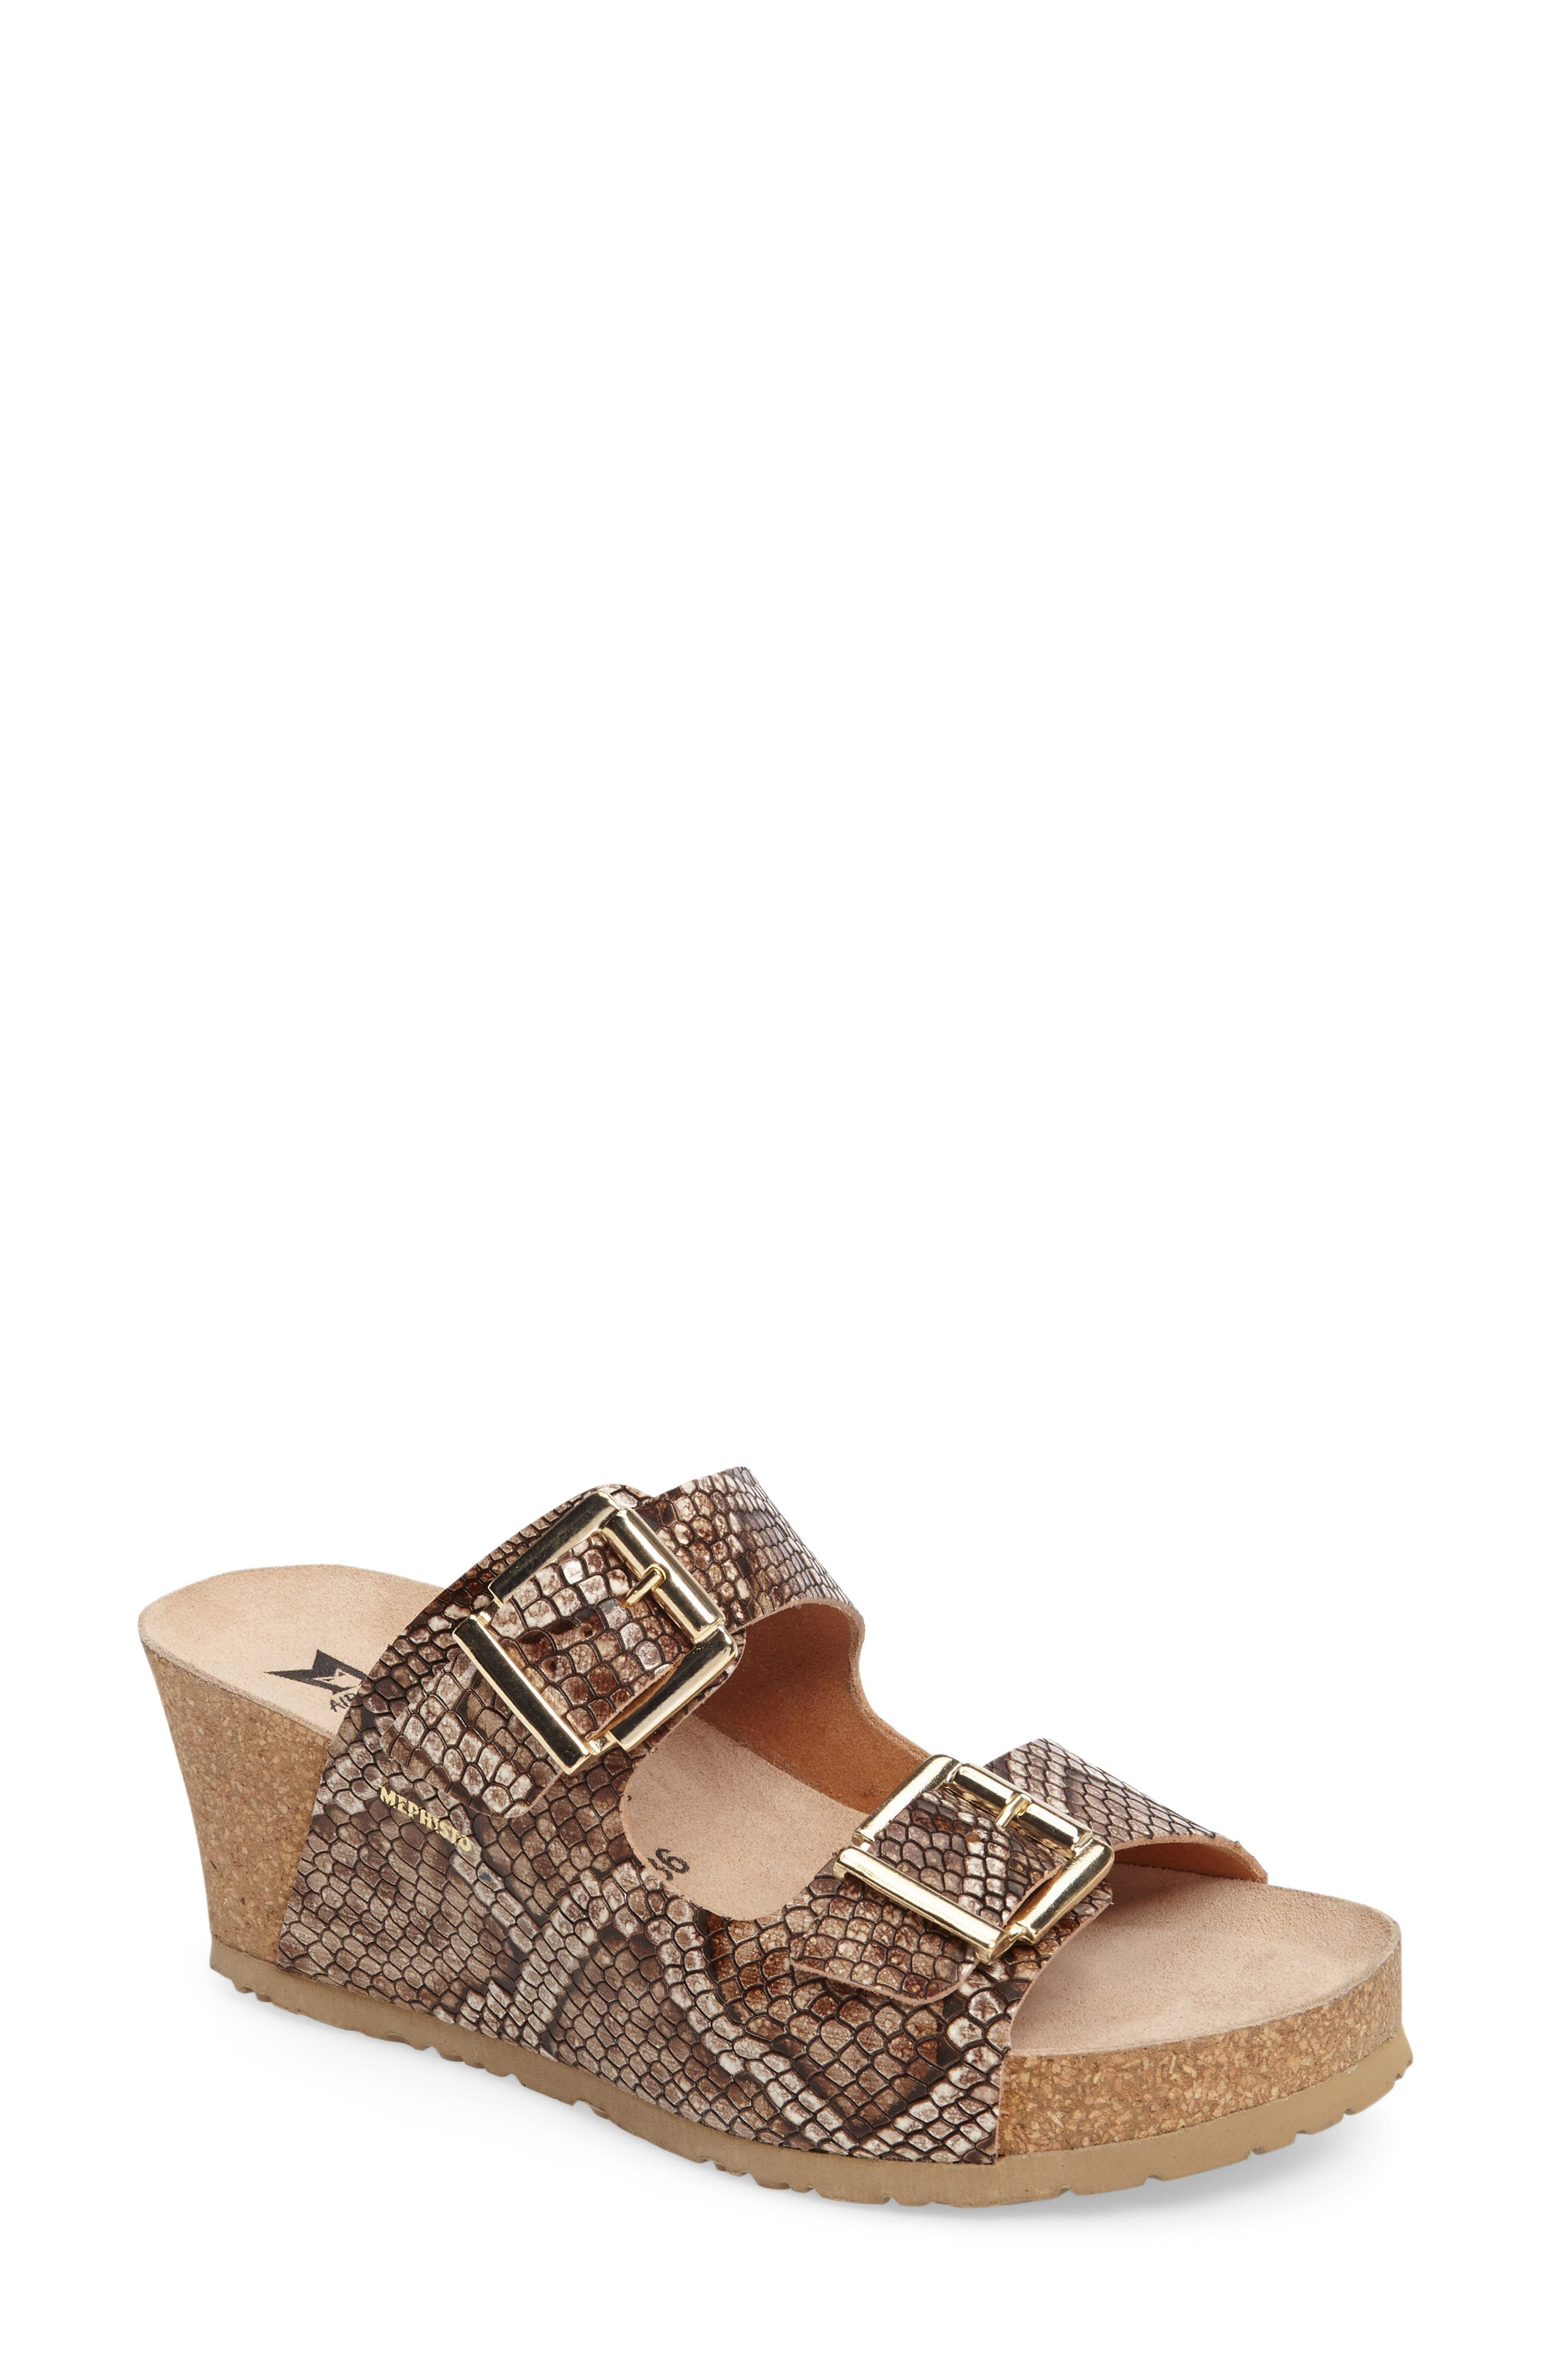 Lenia Wedge Sandal,                         Main,                         color, Brown Leather